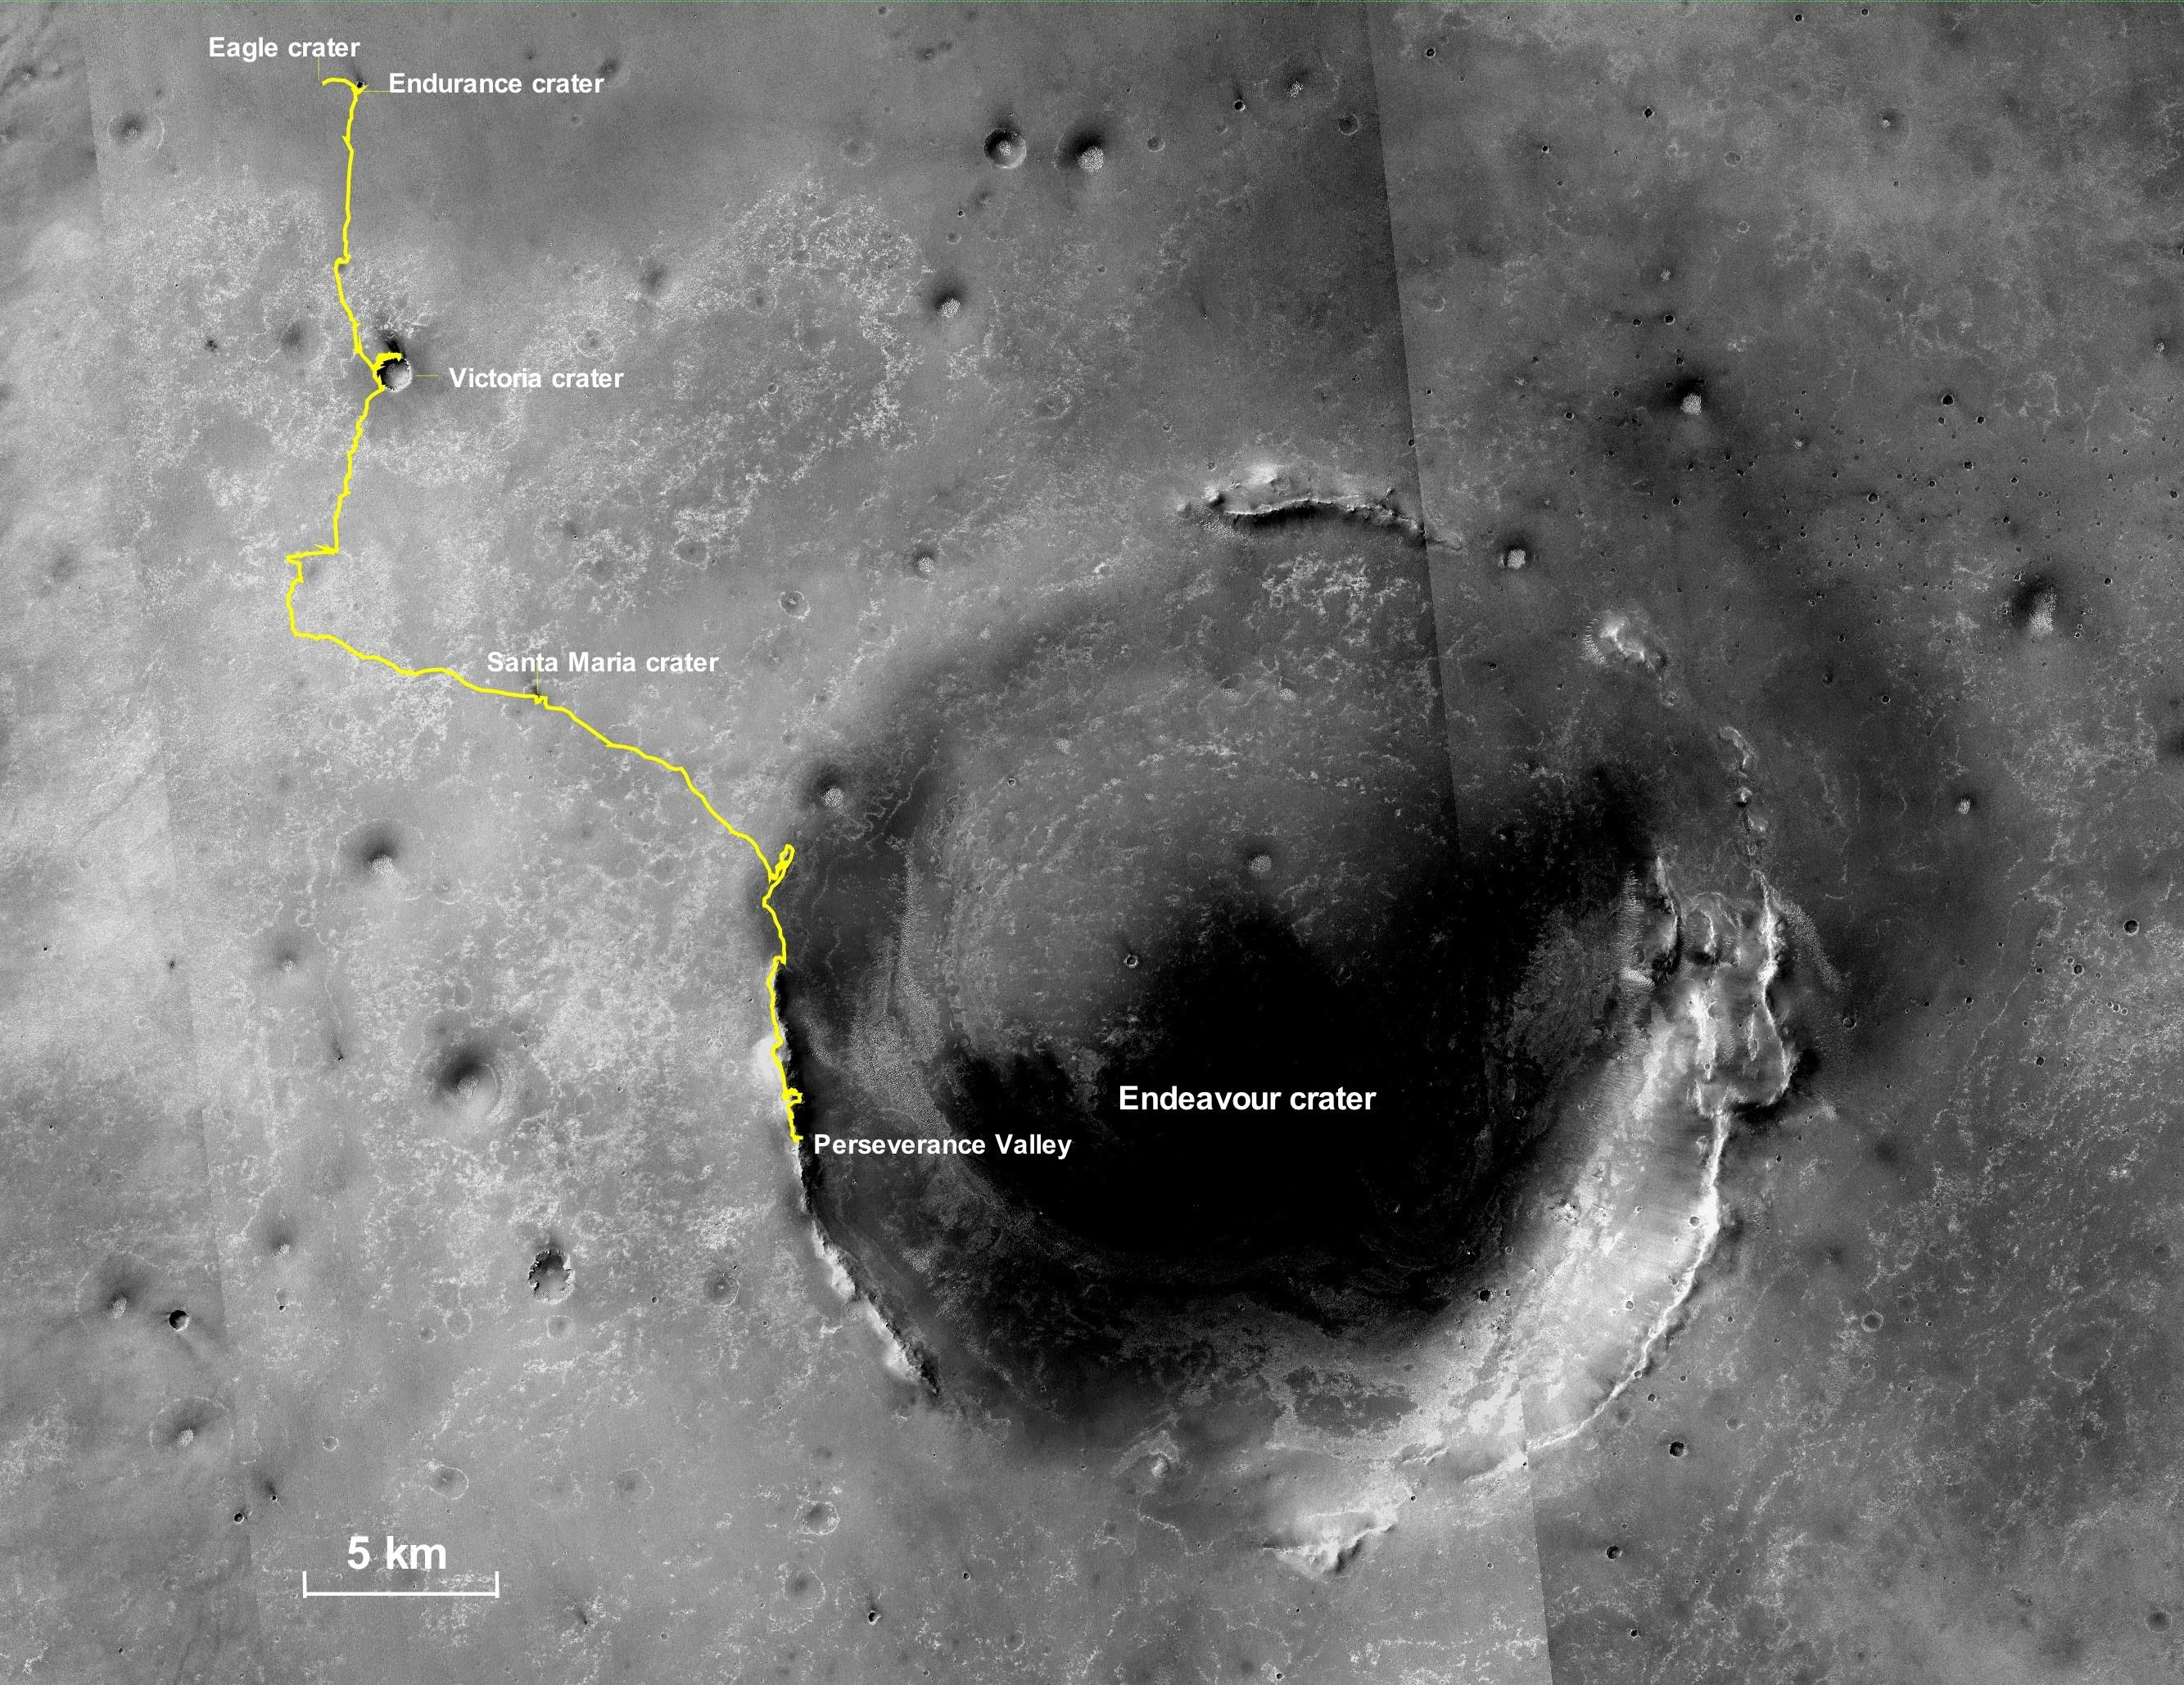 This is the final traverse map for NASAs Opportunity rover, showing where the rover was located within Perseverance Valley on June 10, 2018, the last date it made contact with its engineering team.